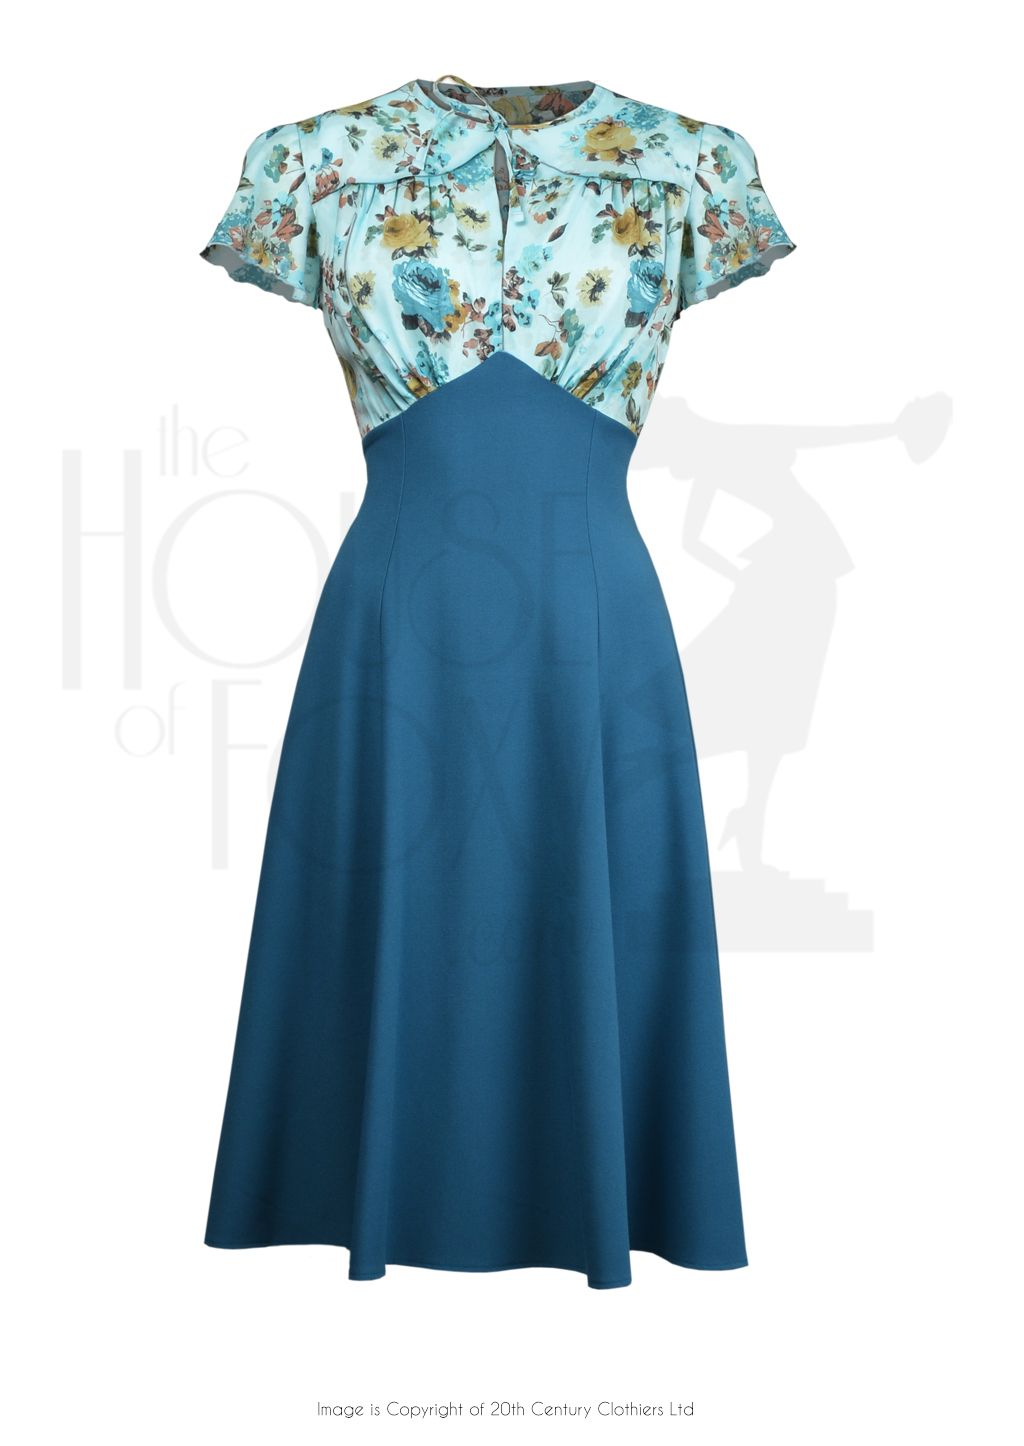 S style grable tea swing dance dress in aqua blossom vintage